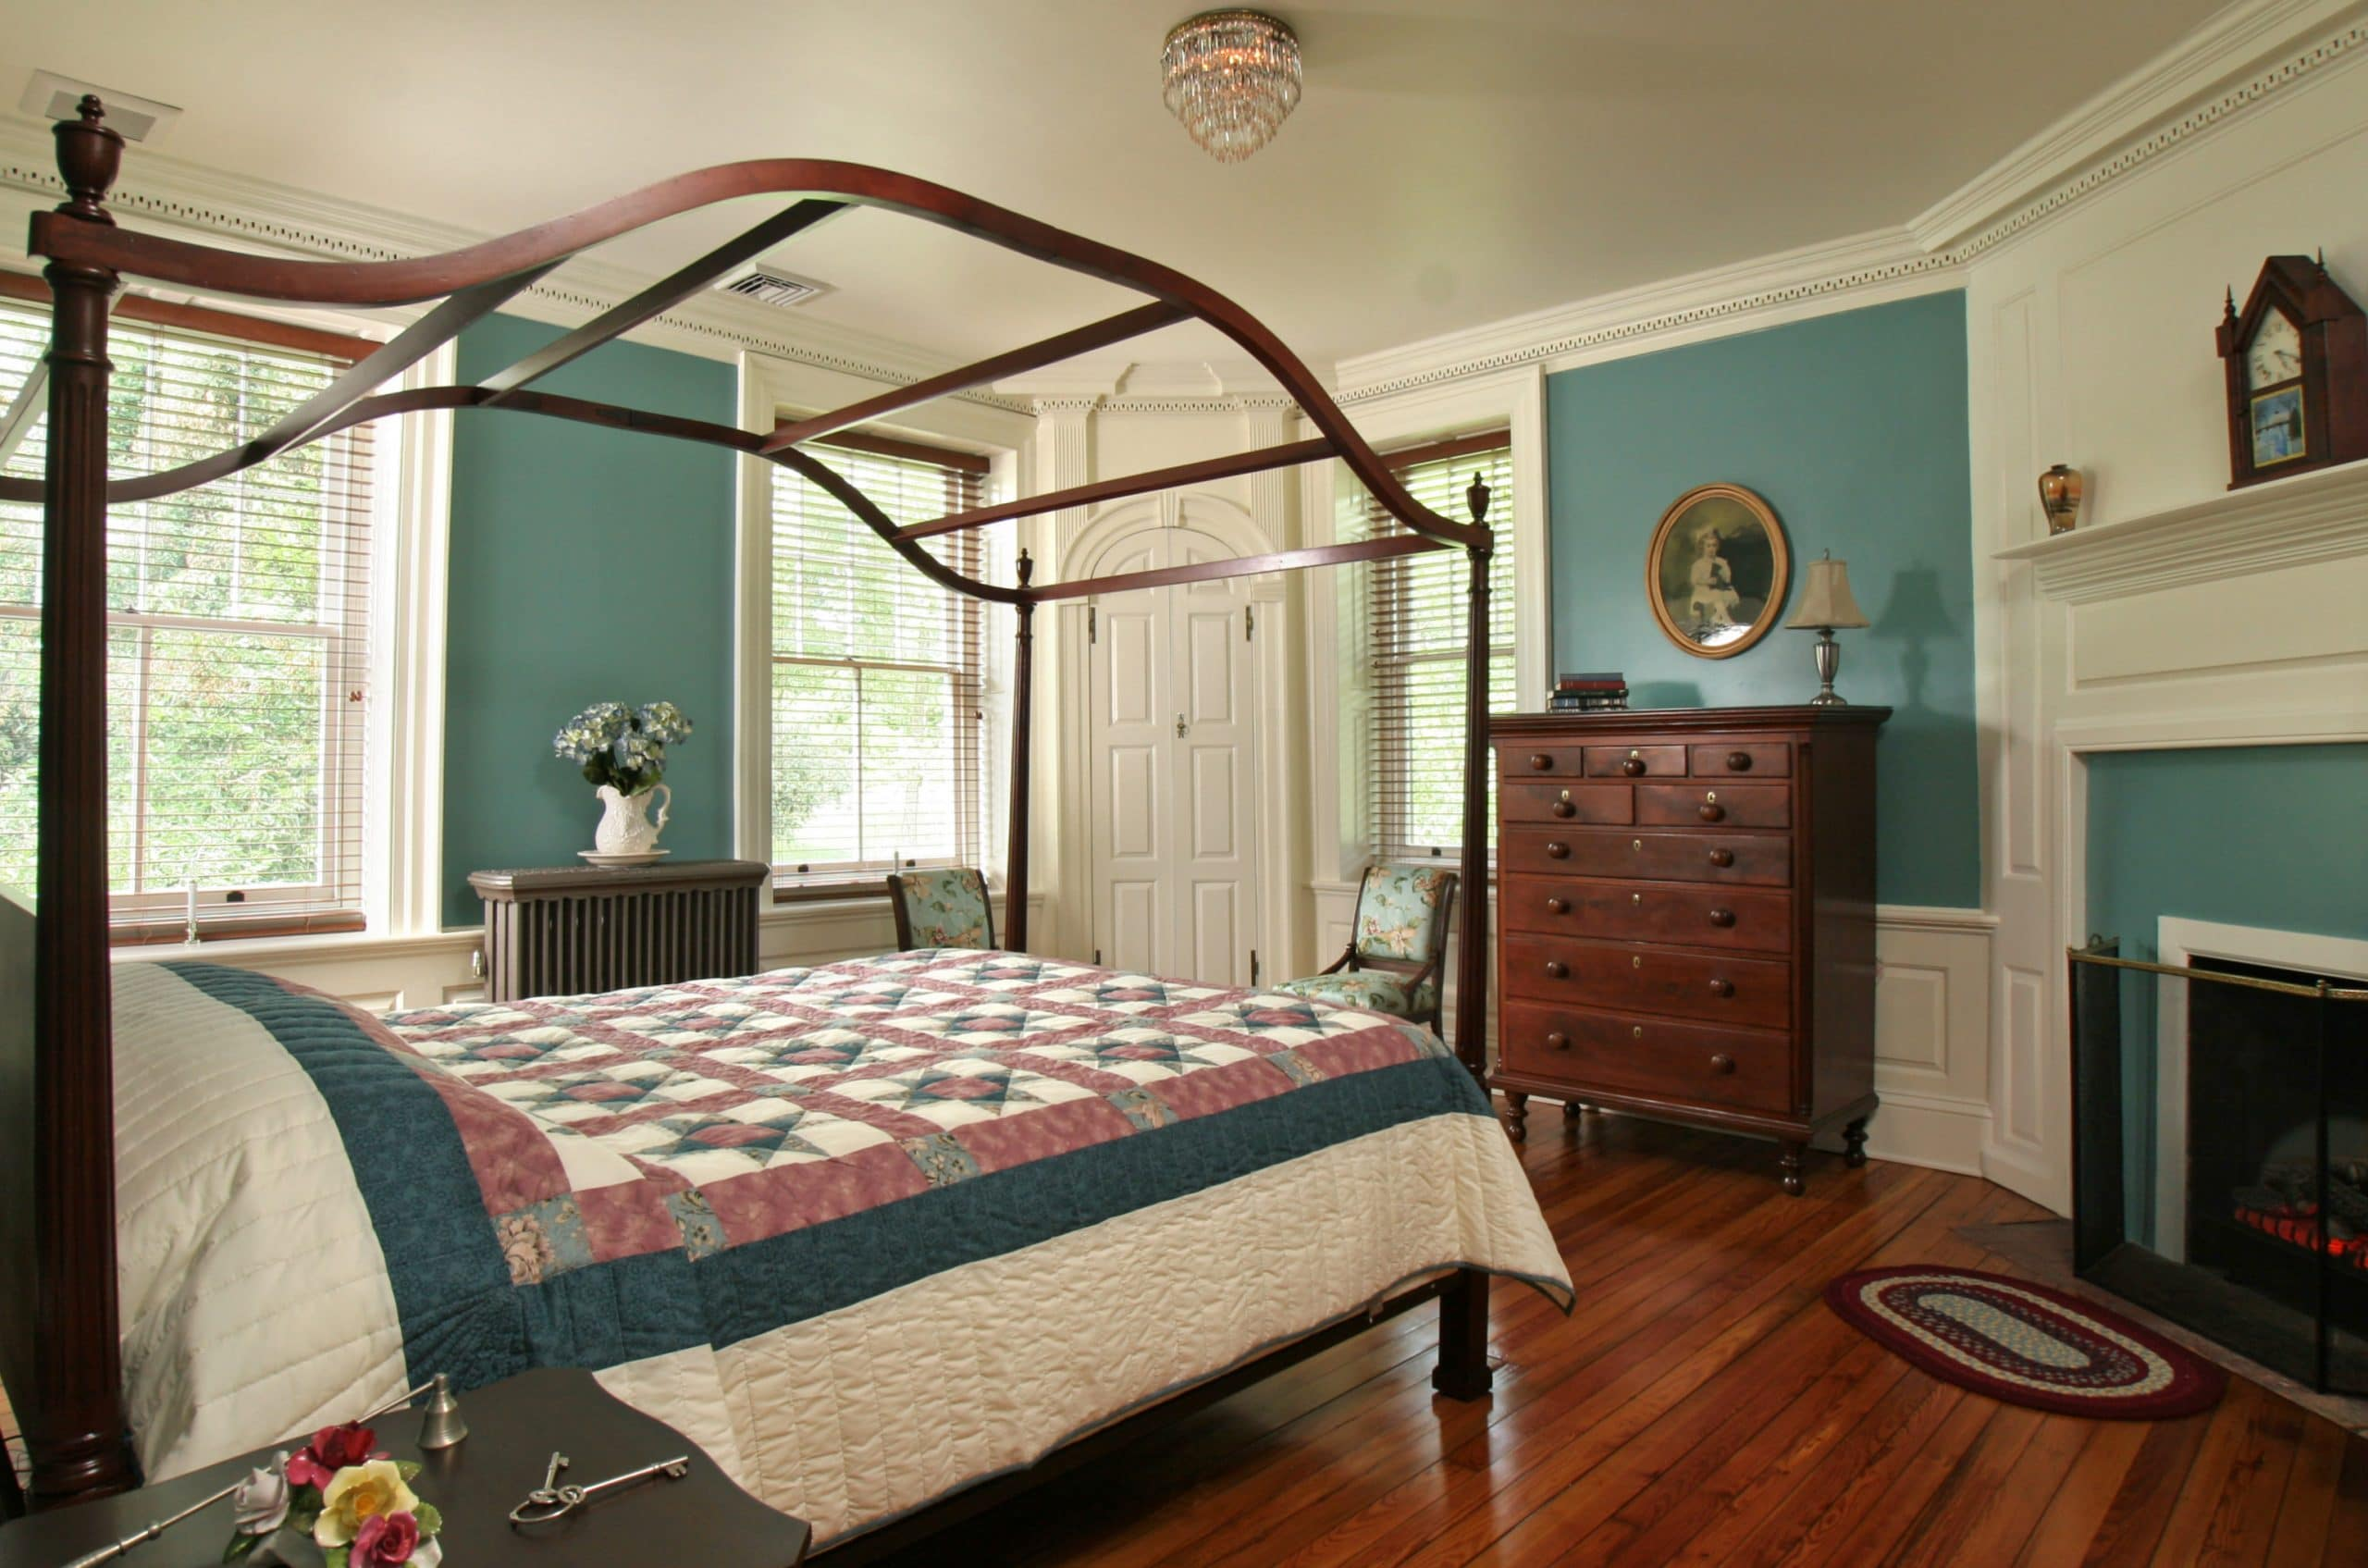 Kathryn's Room at Speedwell Forge Bed & Breakfast